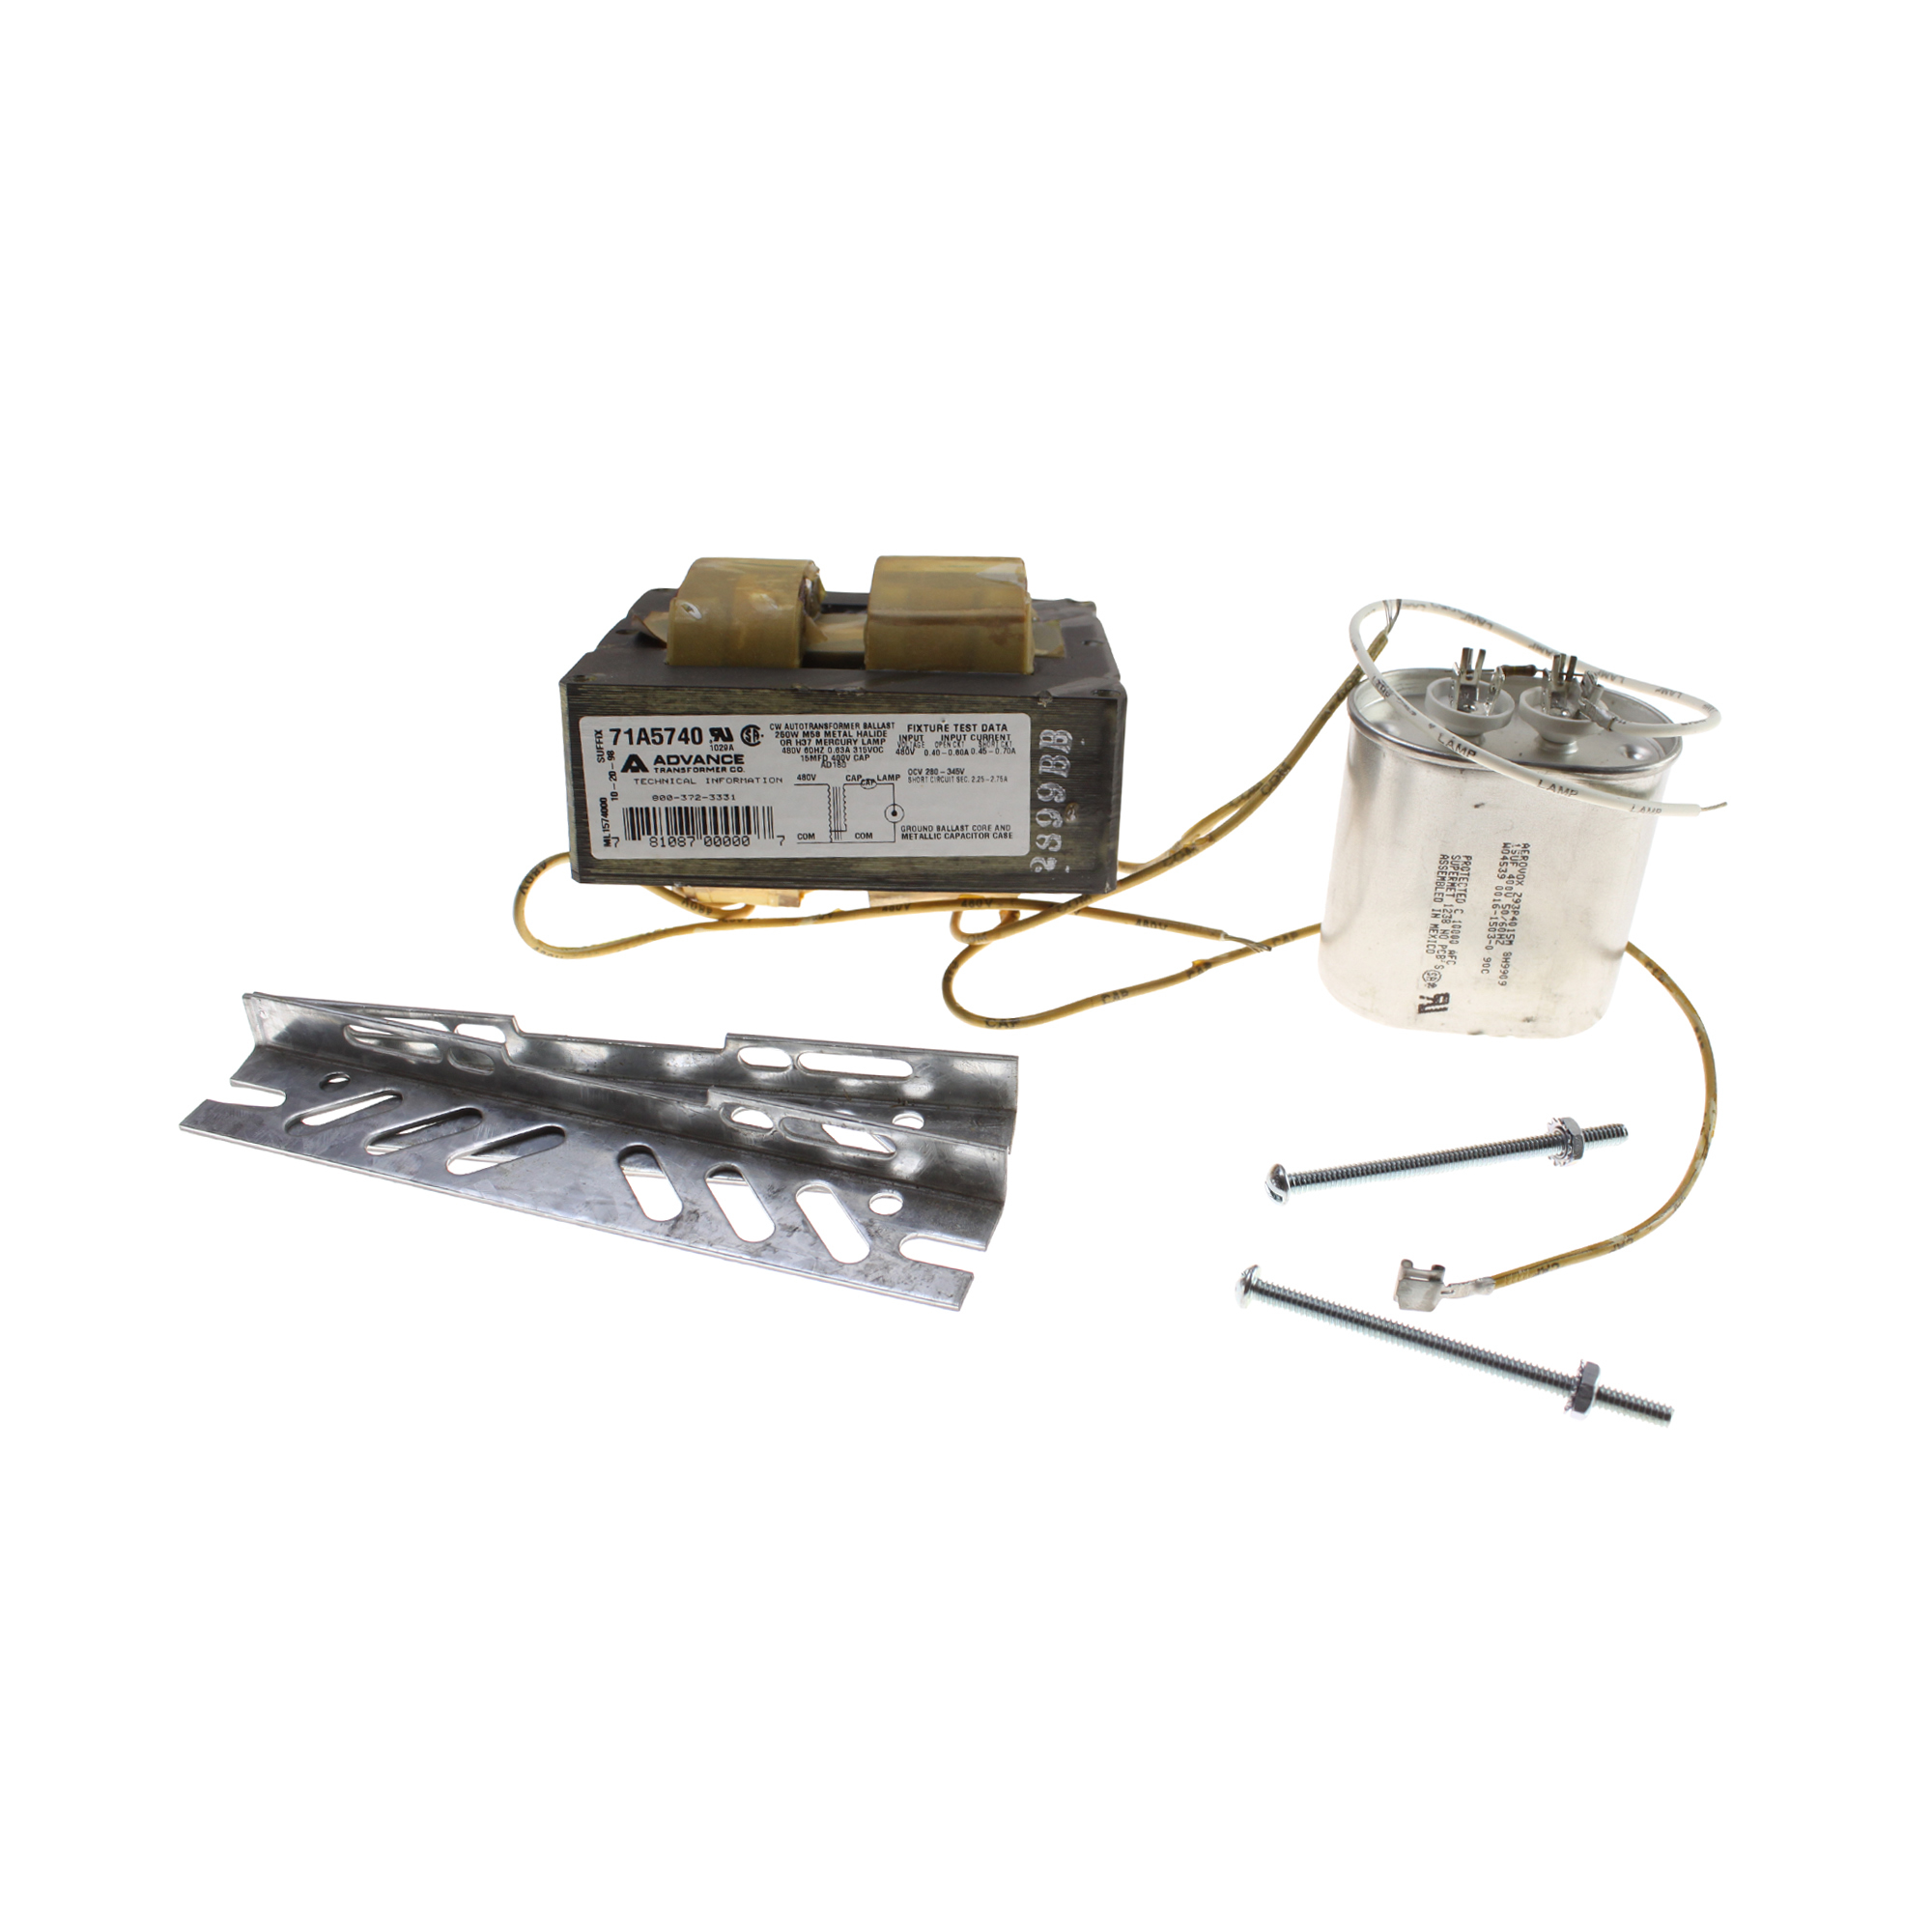 250w Metal Halide Ballast Kit Wiring 480 Volt Diagram